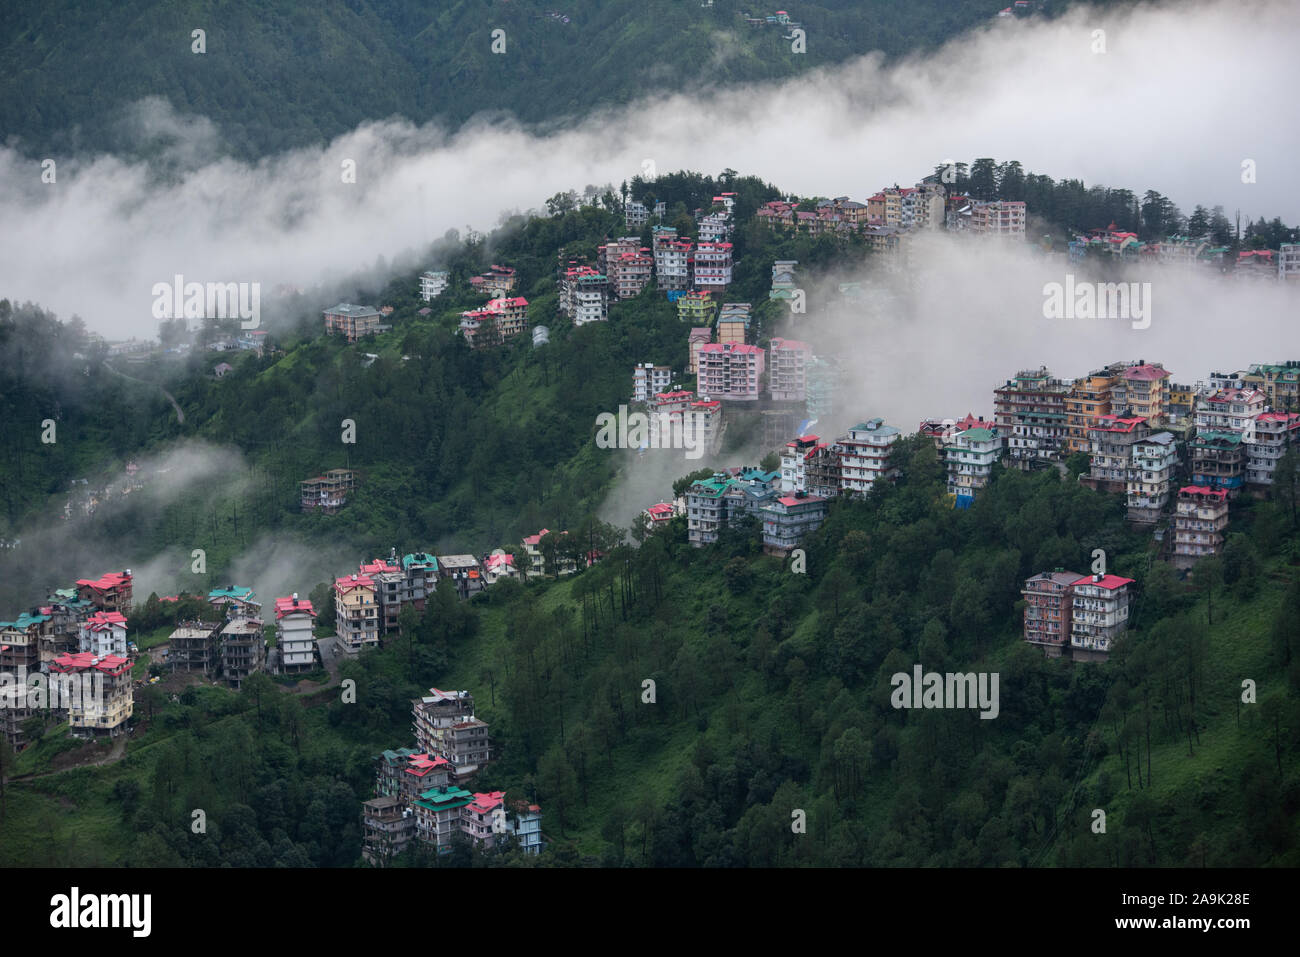 Buildings dotted on the misty mountains during the monsoon season in the Himalayas. Hills around Shimla, Himachal Pradesh, India Stock Photo